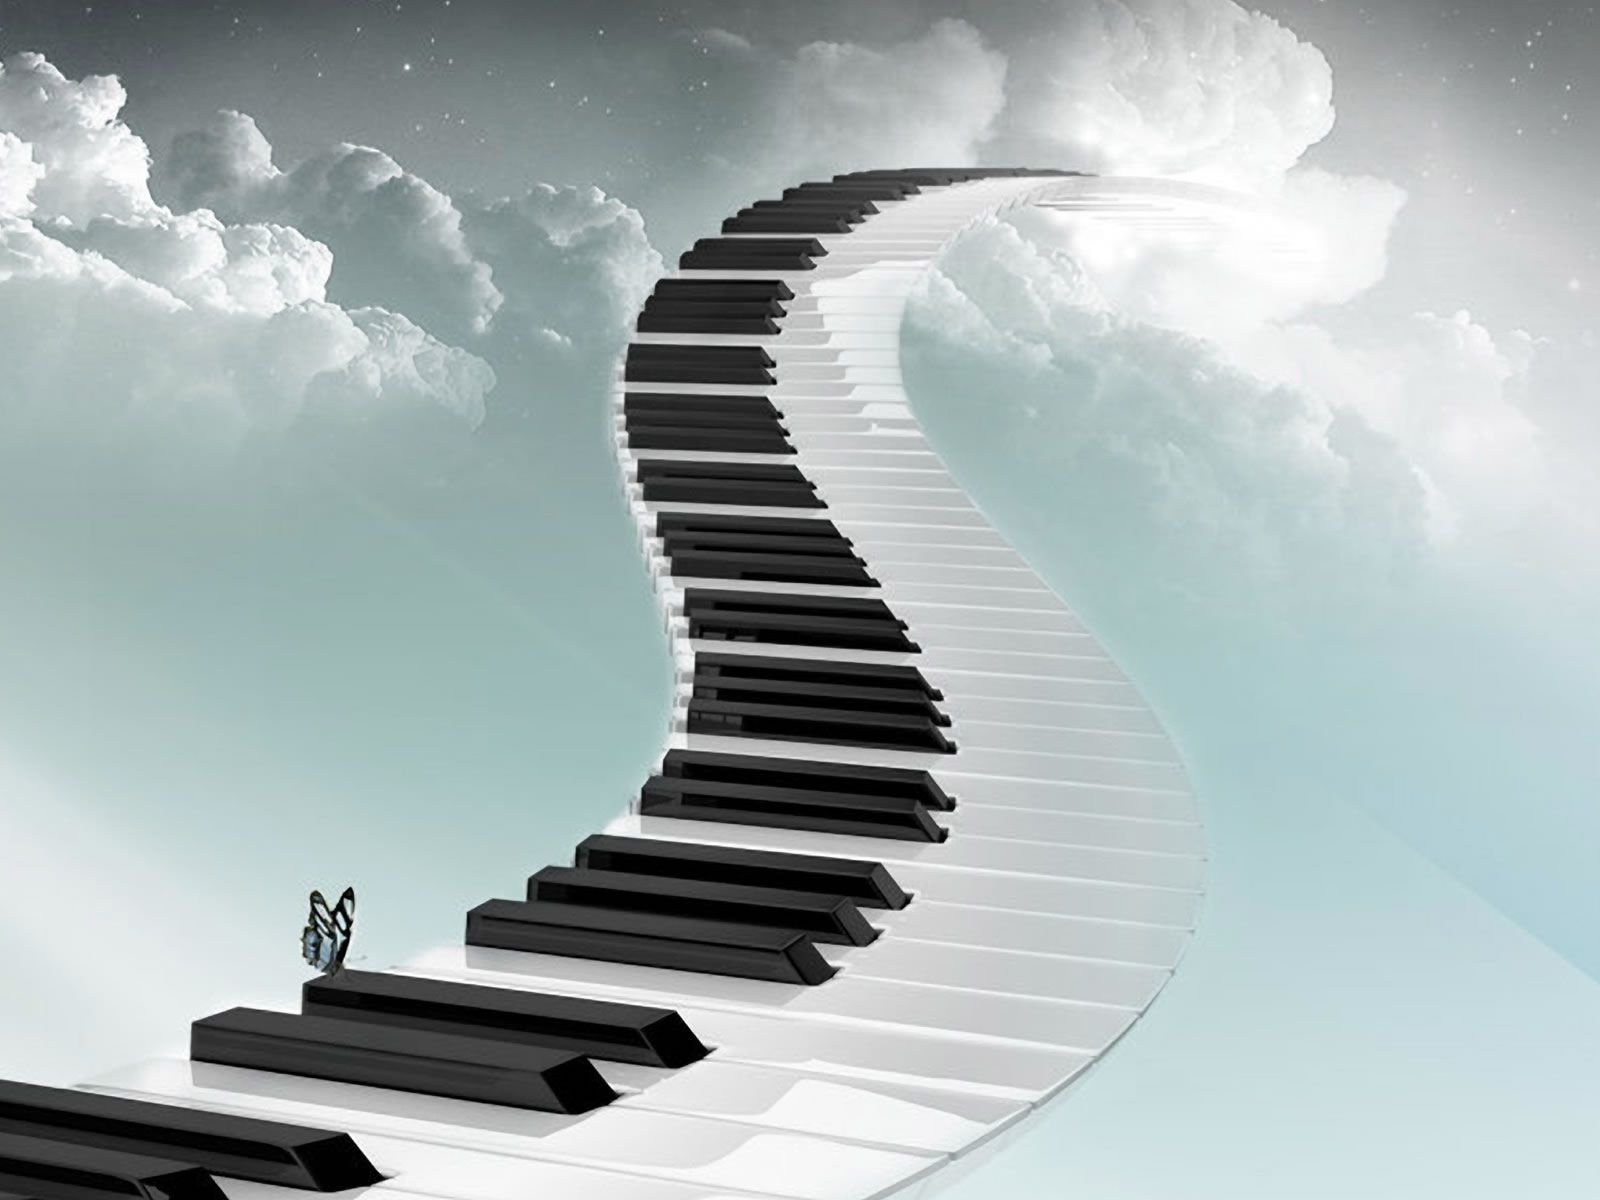 Piano Music Wallpaper: Piano Wallpaper And Background Image